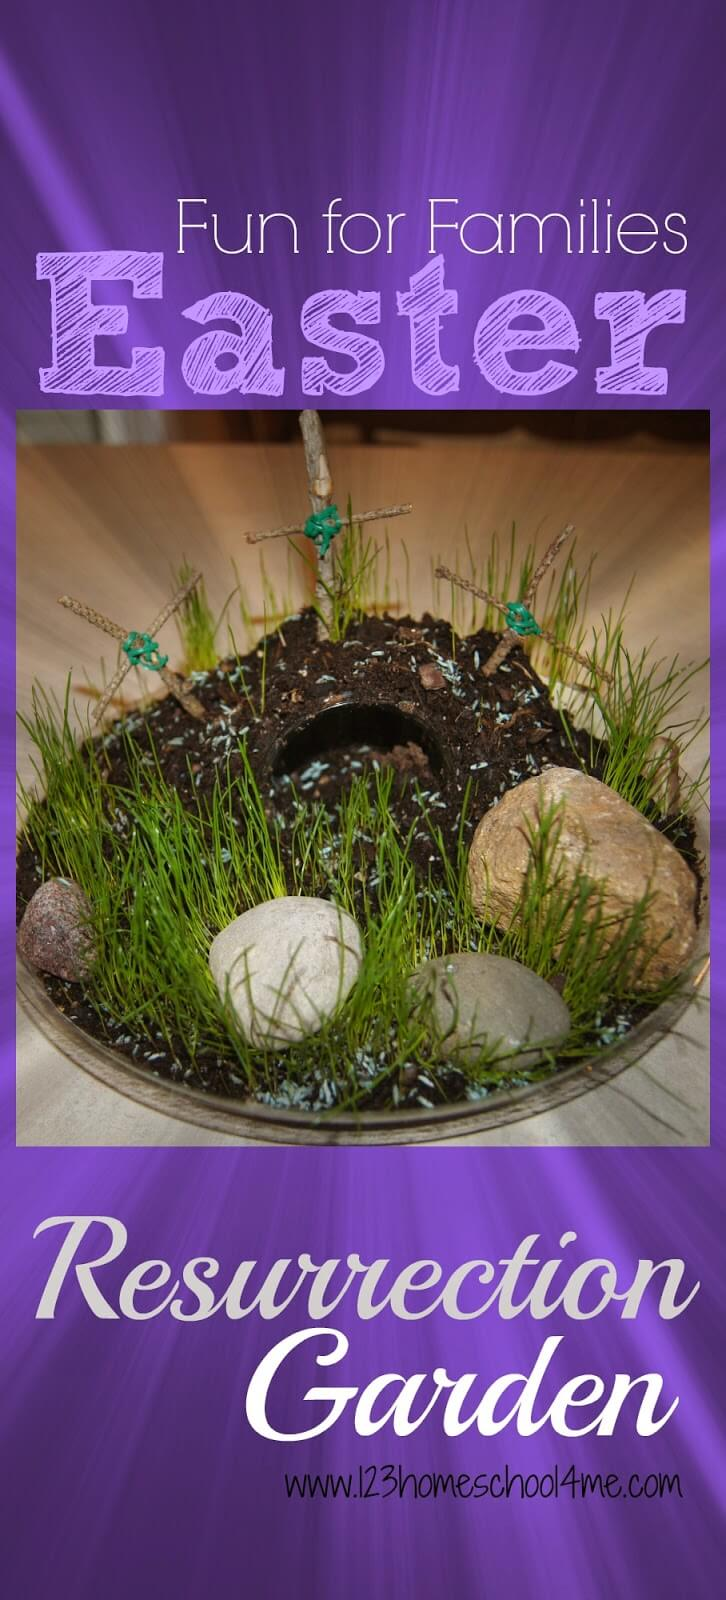 Resurrection Garden - Easter Activity for Families with kids of all ages. This is a fun, simple way to remember the real reason for Easter - Jesus while having fun as a family. #easter #easteractivity